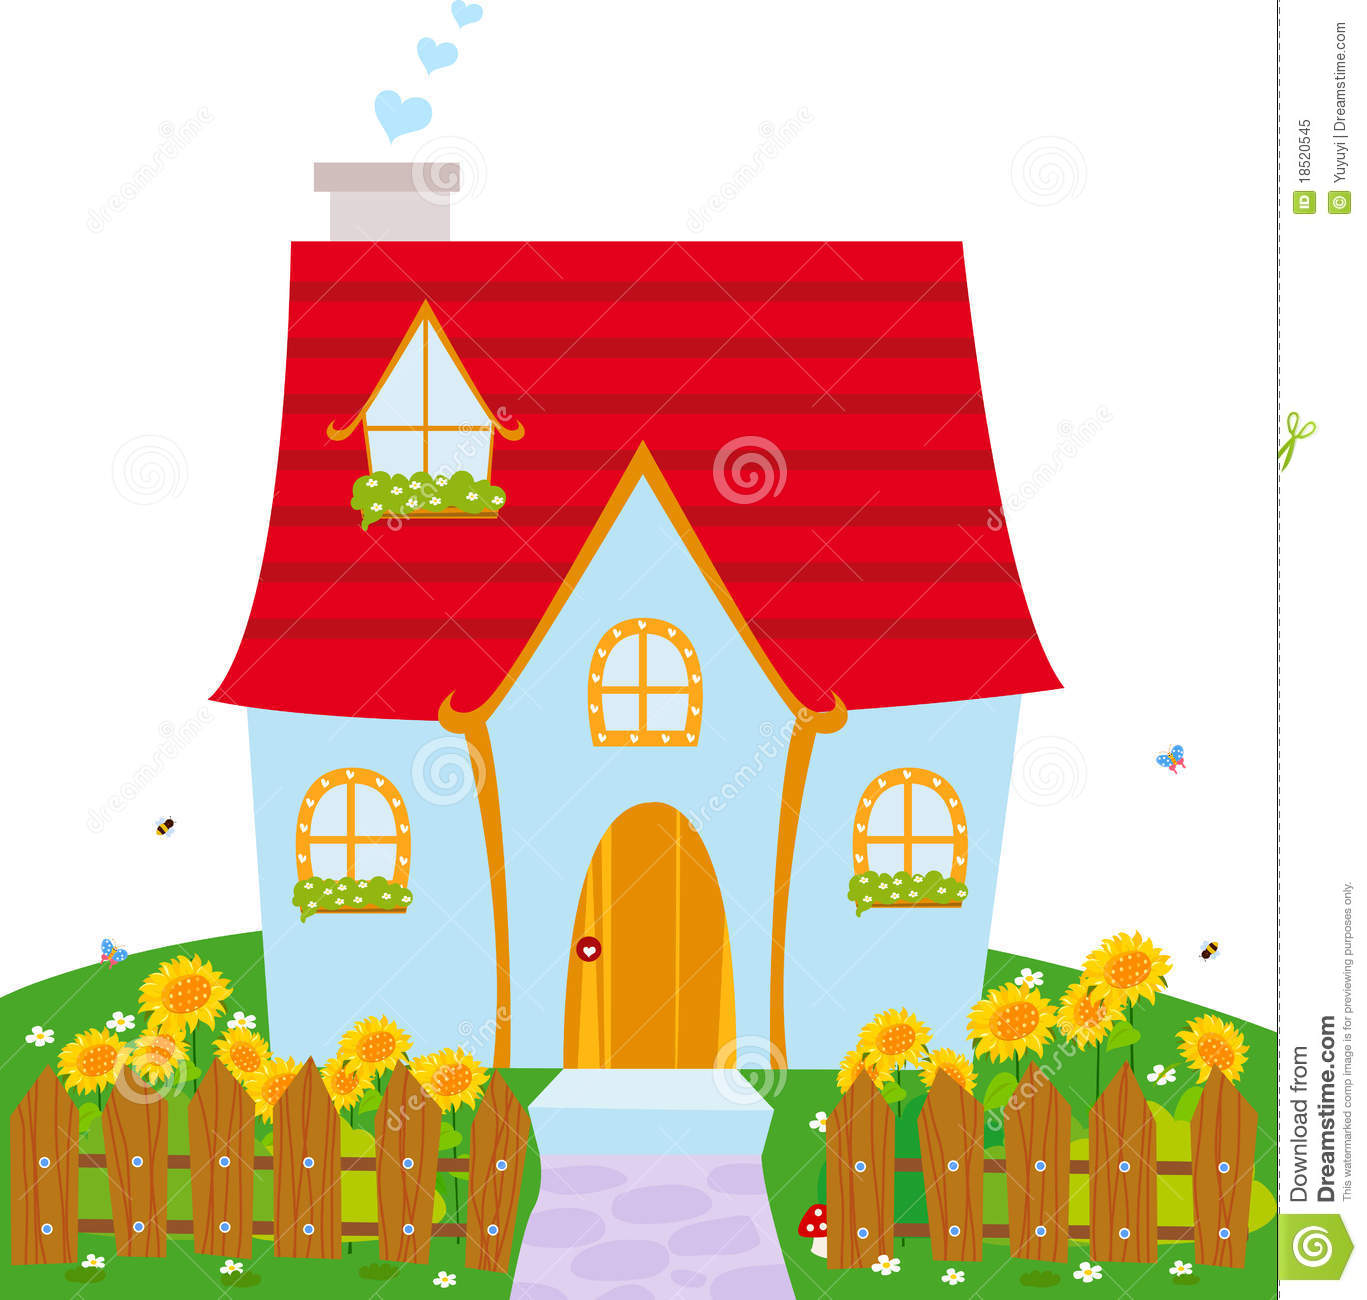 Hosue clipart cute House — Clipartwork House Cute